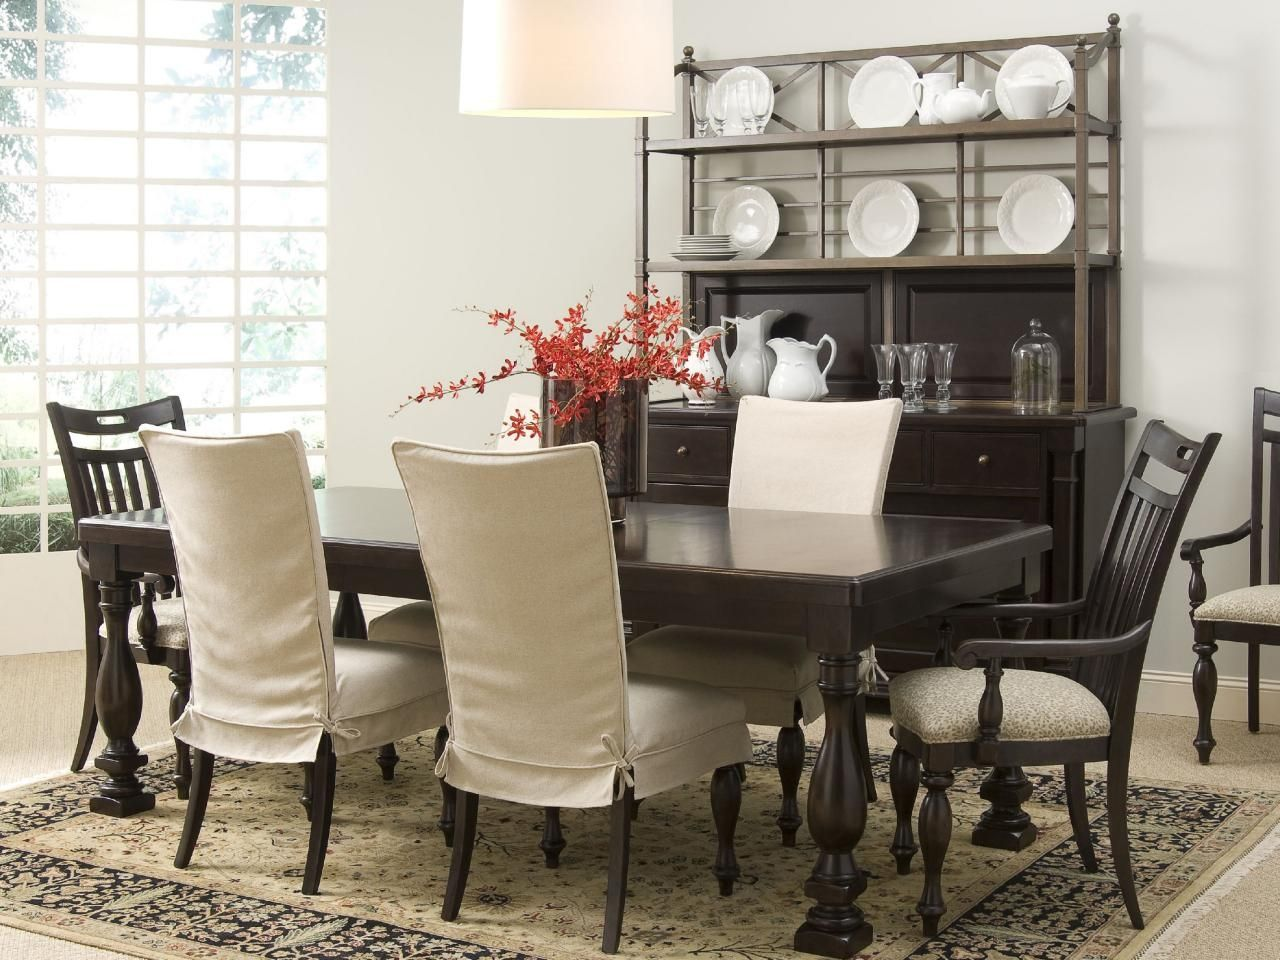 Slipcovers Dining Chairs With Arms